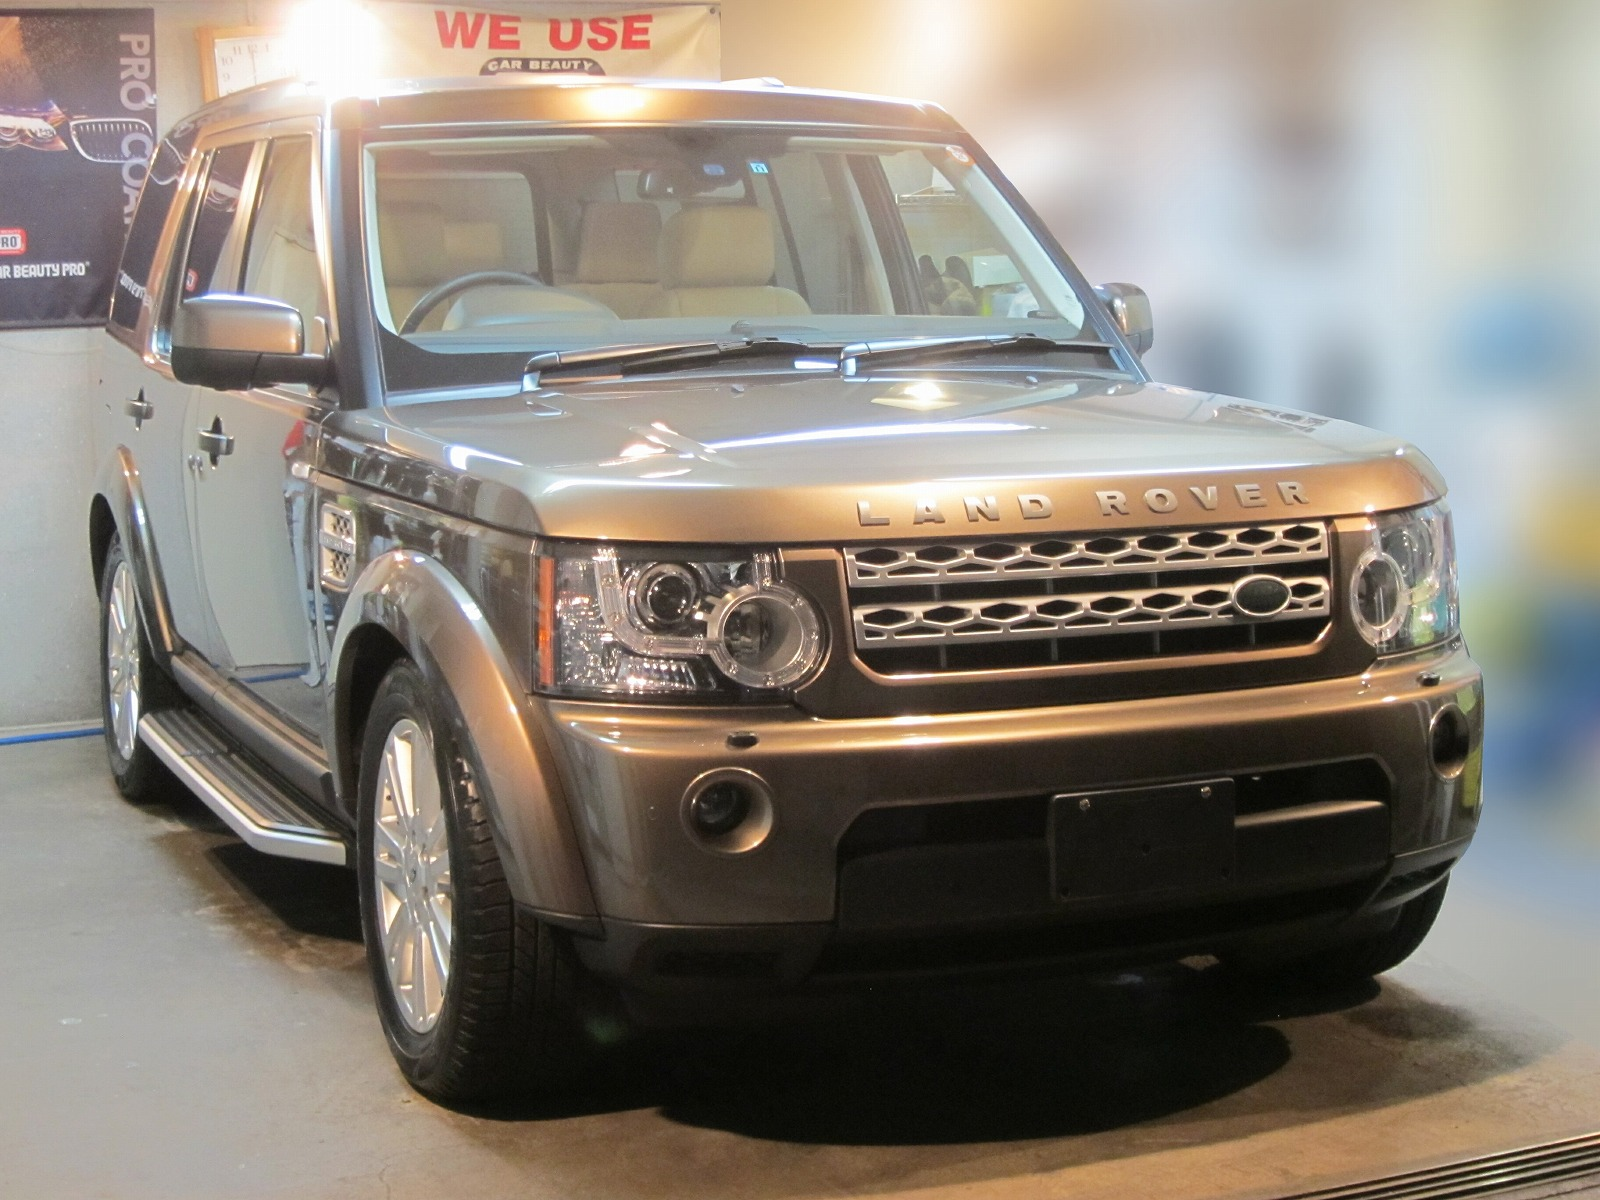 20160629-landrover-discovery4-01